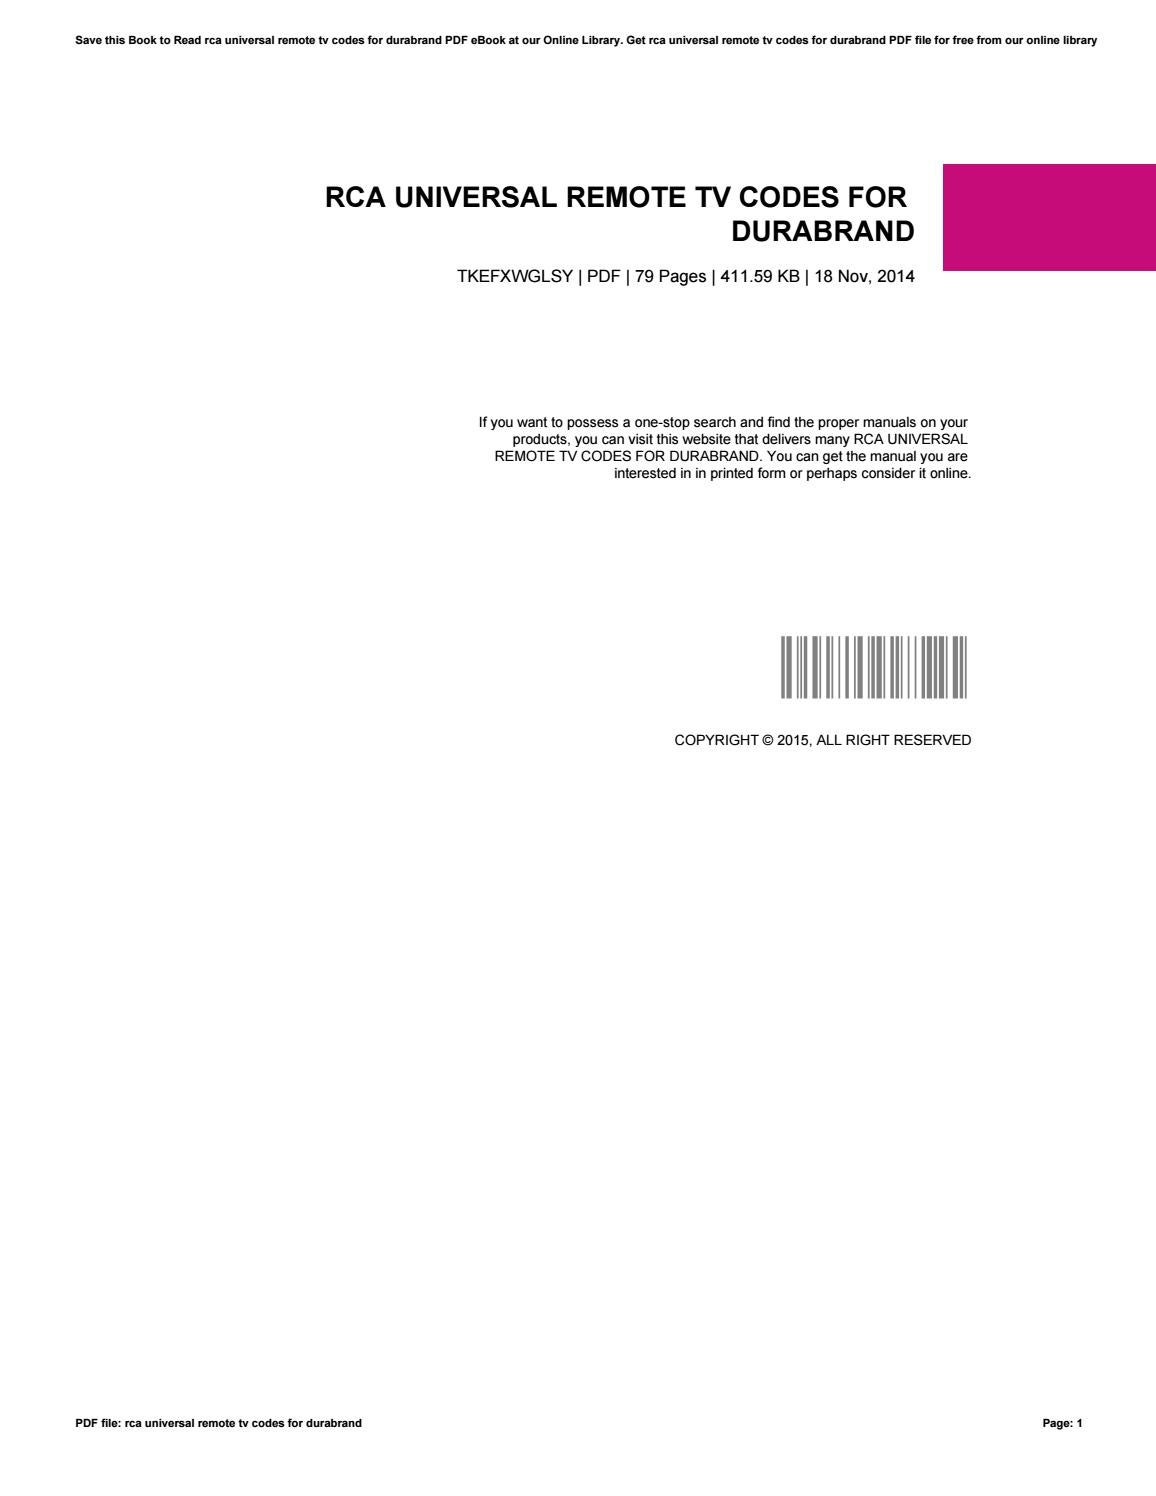 rcaprojectiontelevisionmanual 180131035523 thumbnail 4 jpg cb  u003d1517370980 Array - rca manual for tv ebook rh rca manual for tv ebook  nitrorocks de